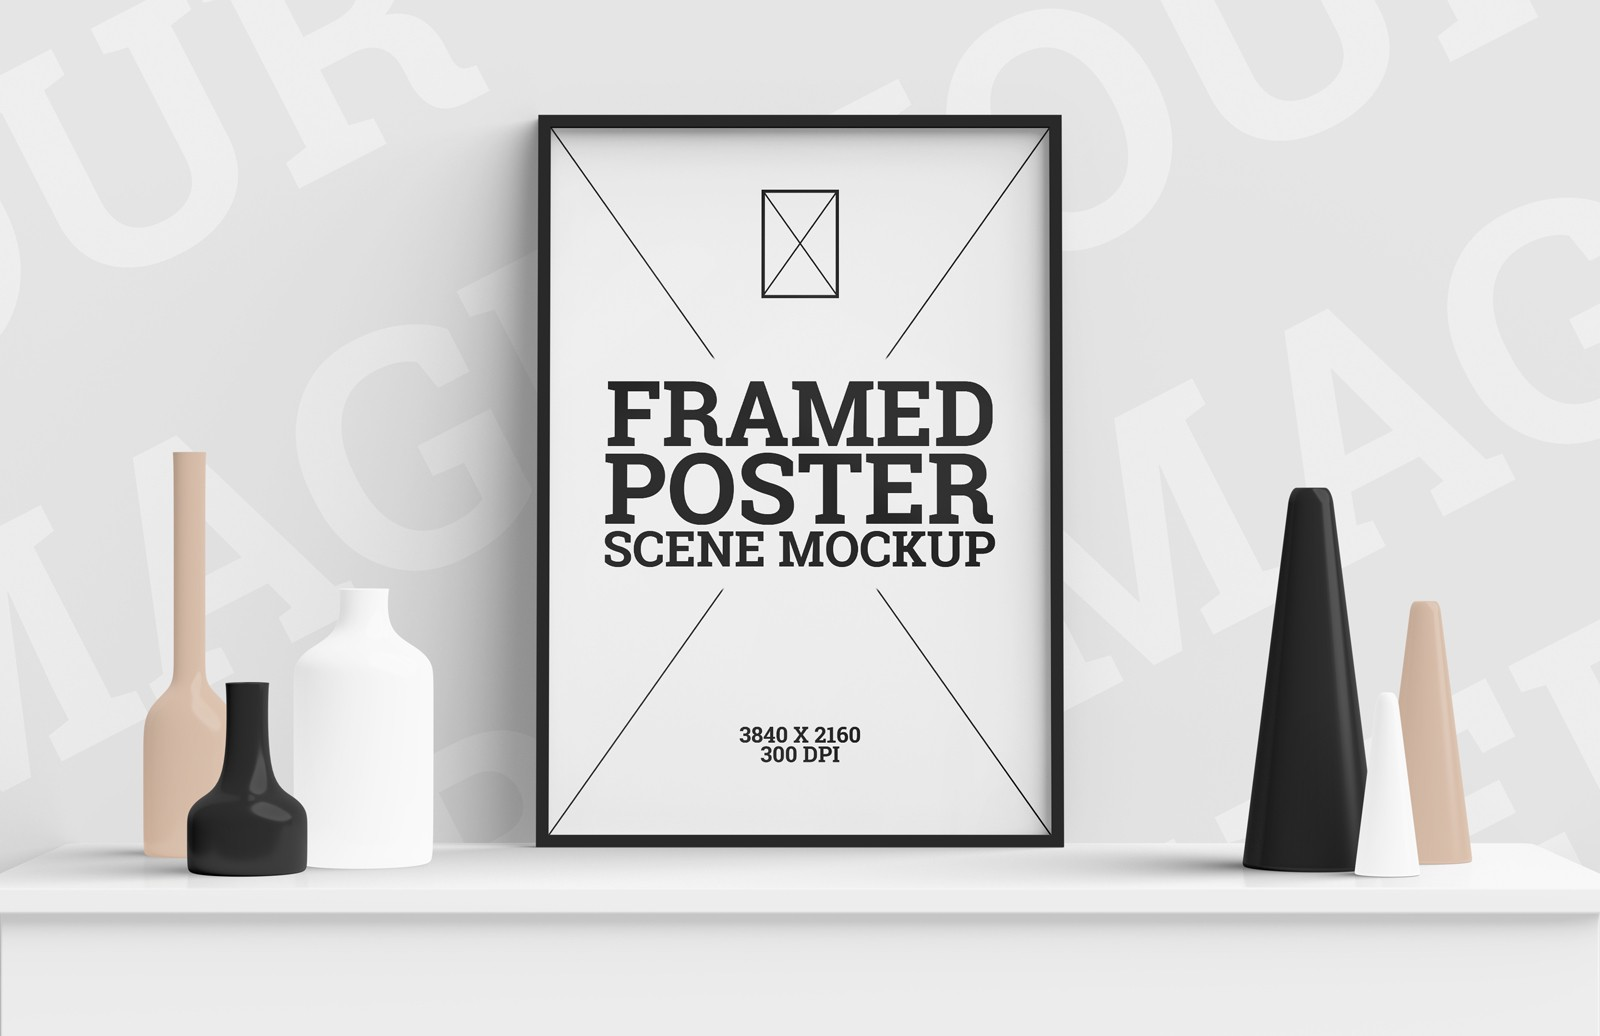 Framed Poster Scene Mockup Preview 1